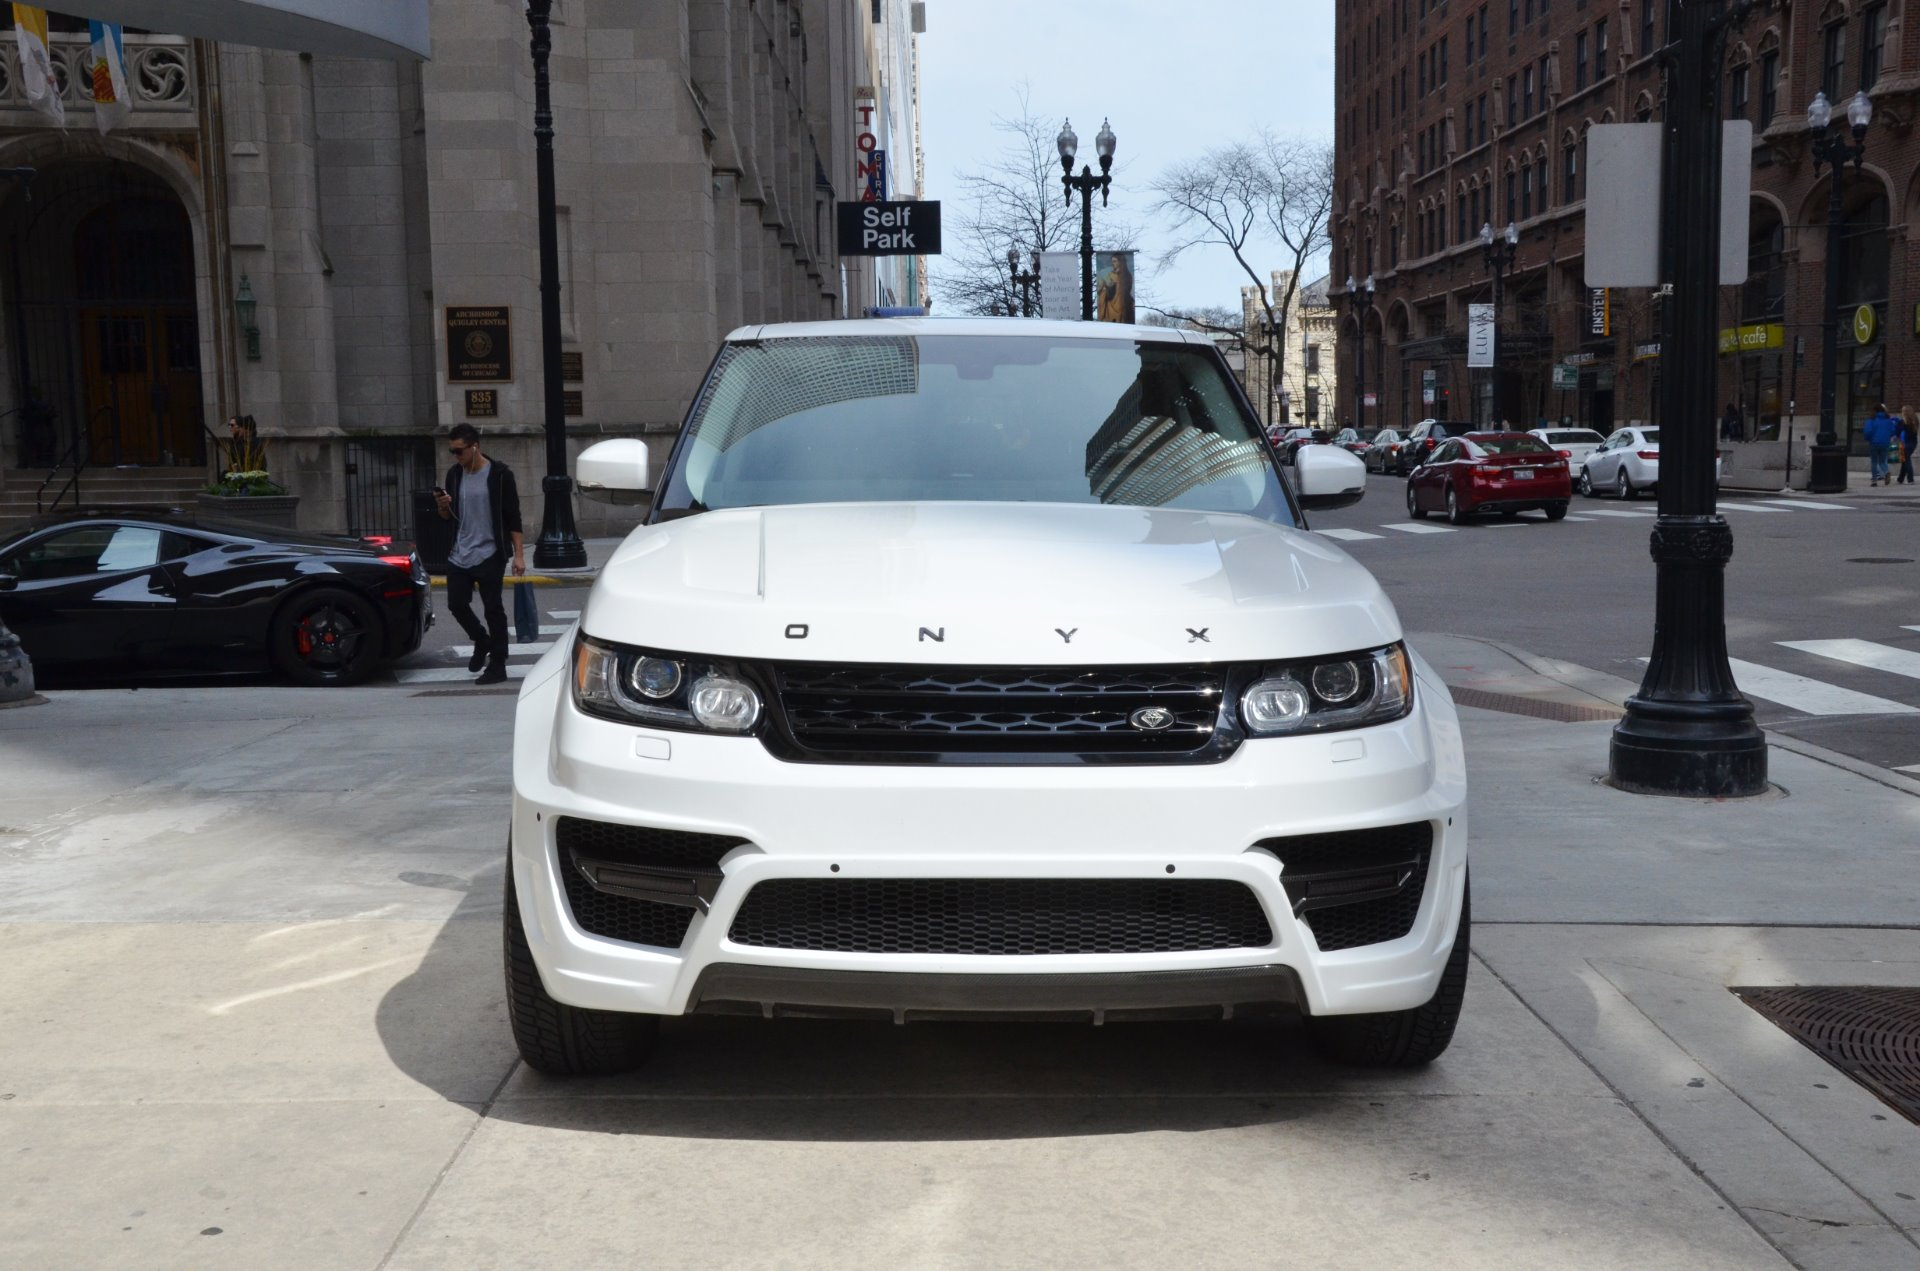 2014 land rover range rover sport supercharged stock r328ab for sale near chicago il il. Black Bedroom Furniture Sets. Home Design Ideas